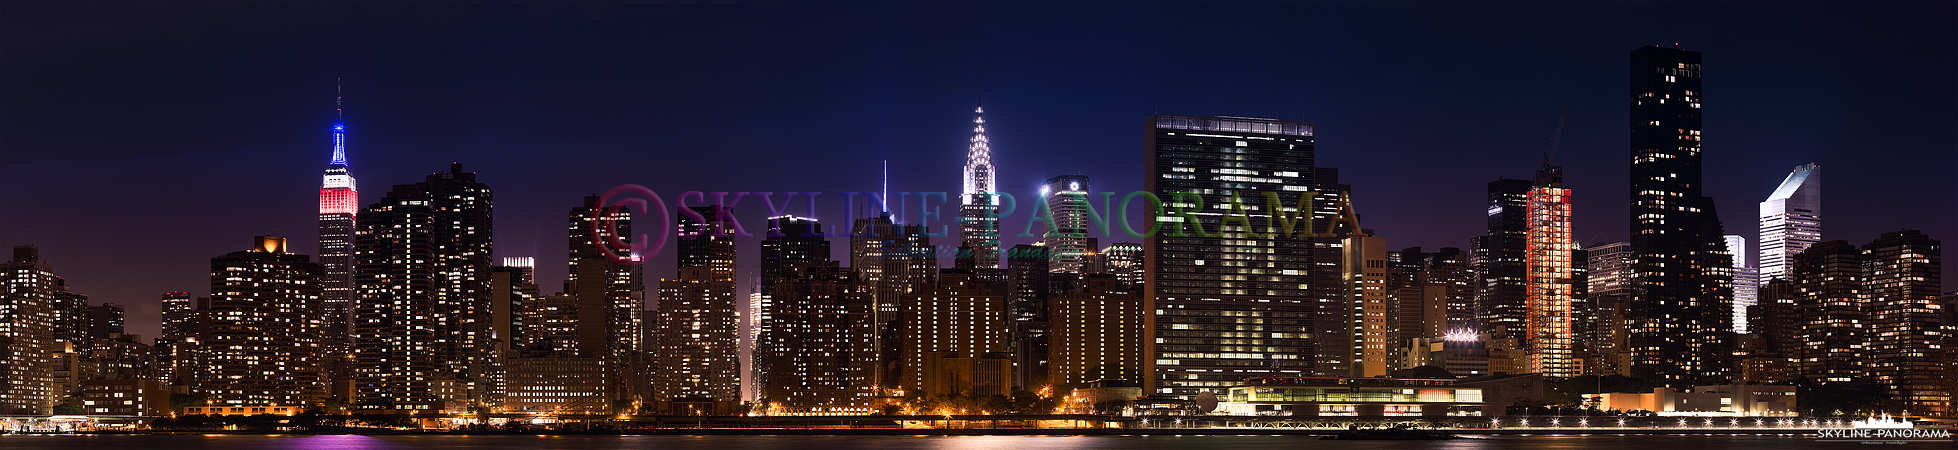 New York - Skyline Panorama